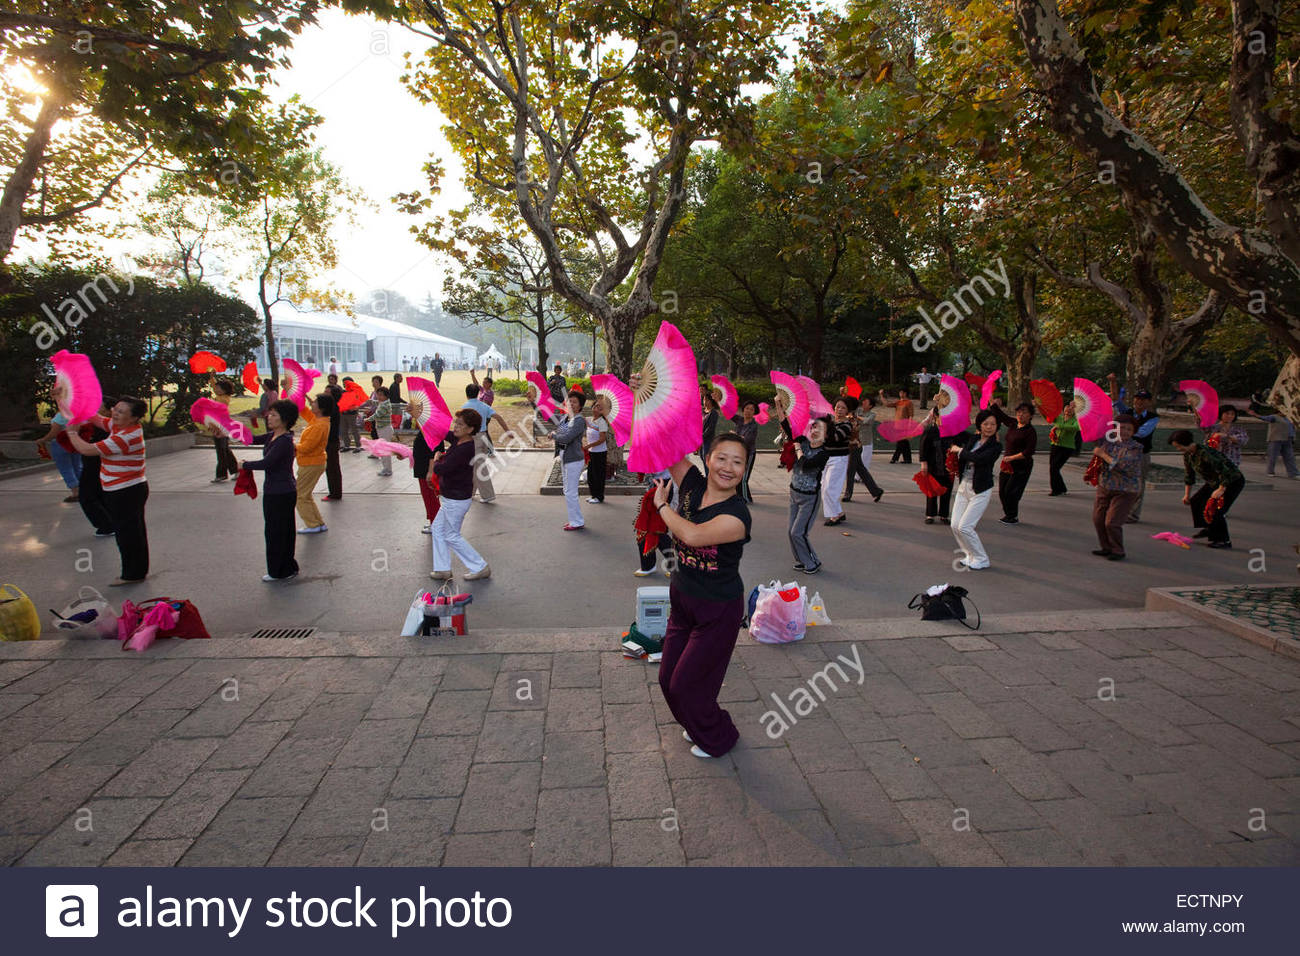 Shanghai, People practicing Tai Chi with fans, Fuxing park. - Stock Image